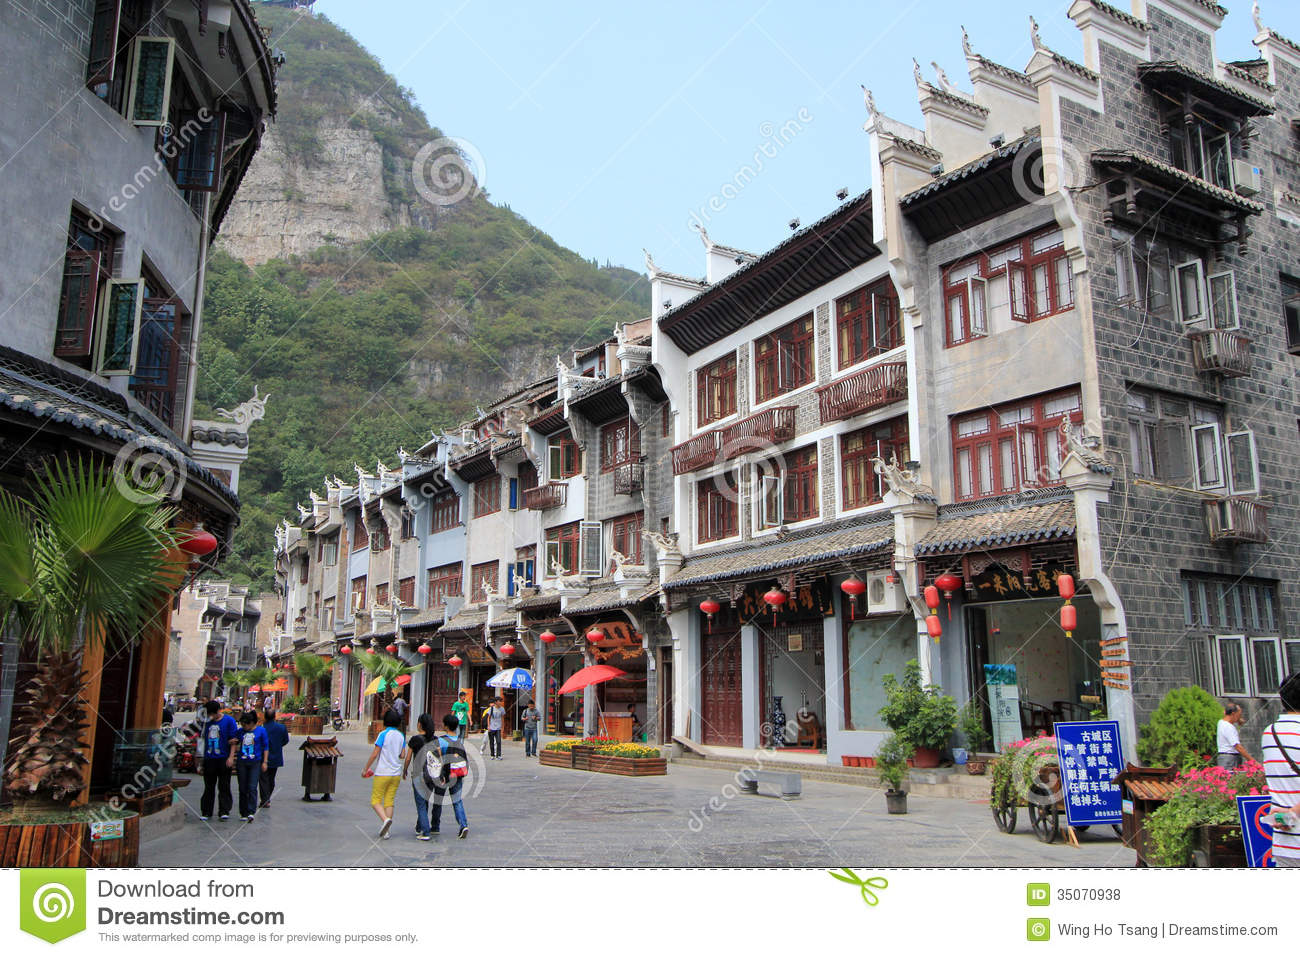 Zhenyuan (Guizhou) China  city photo : Zhenyuan Ancient Town In Guizhou China Editorial Stock Photo Image ...